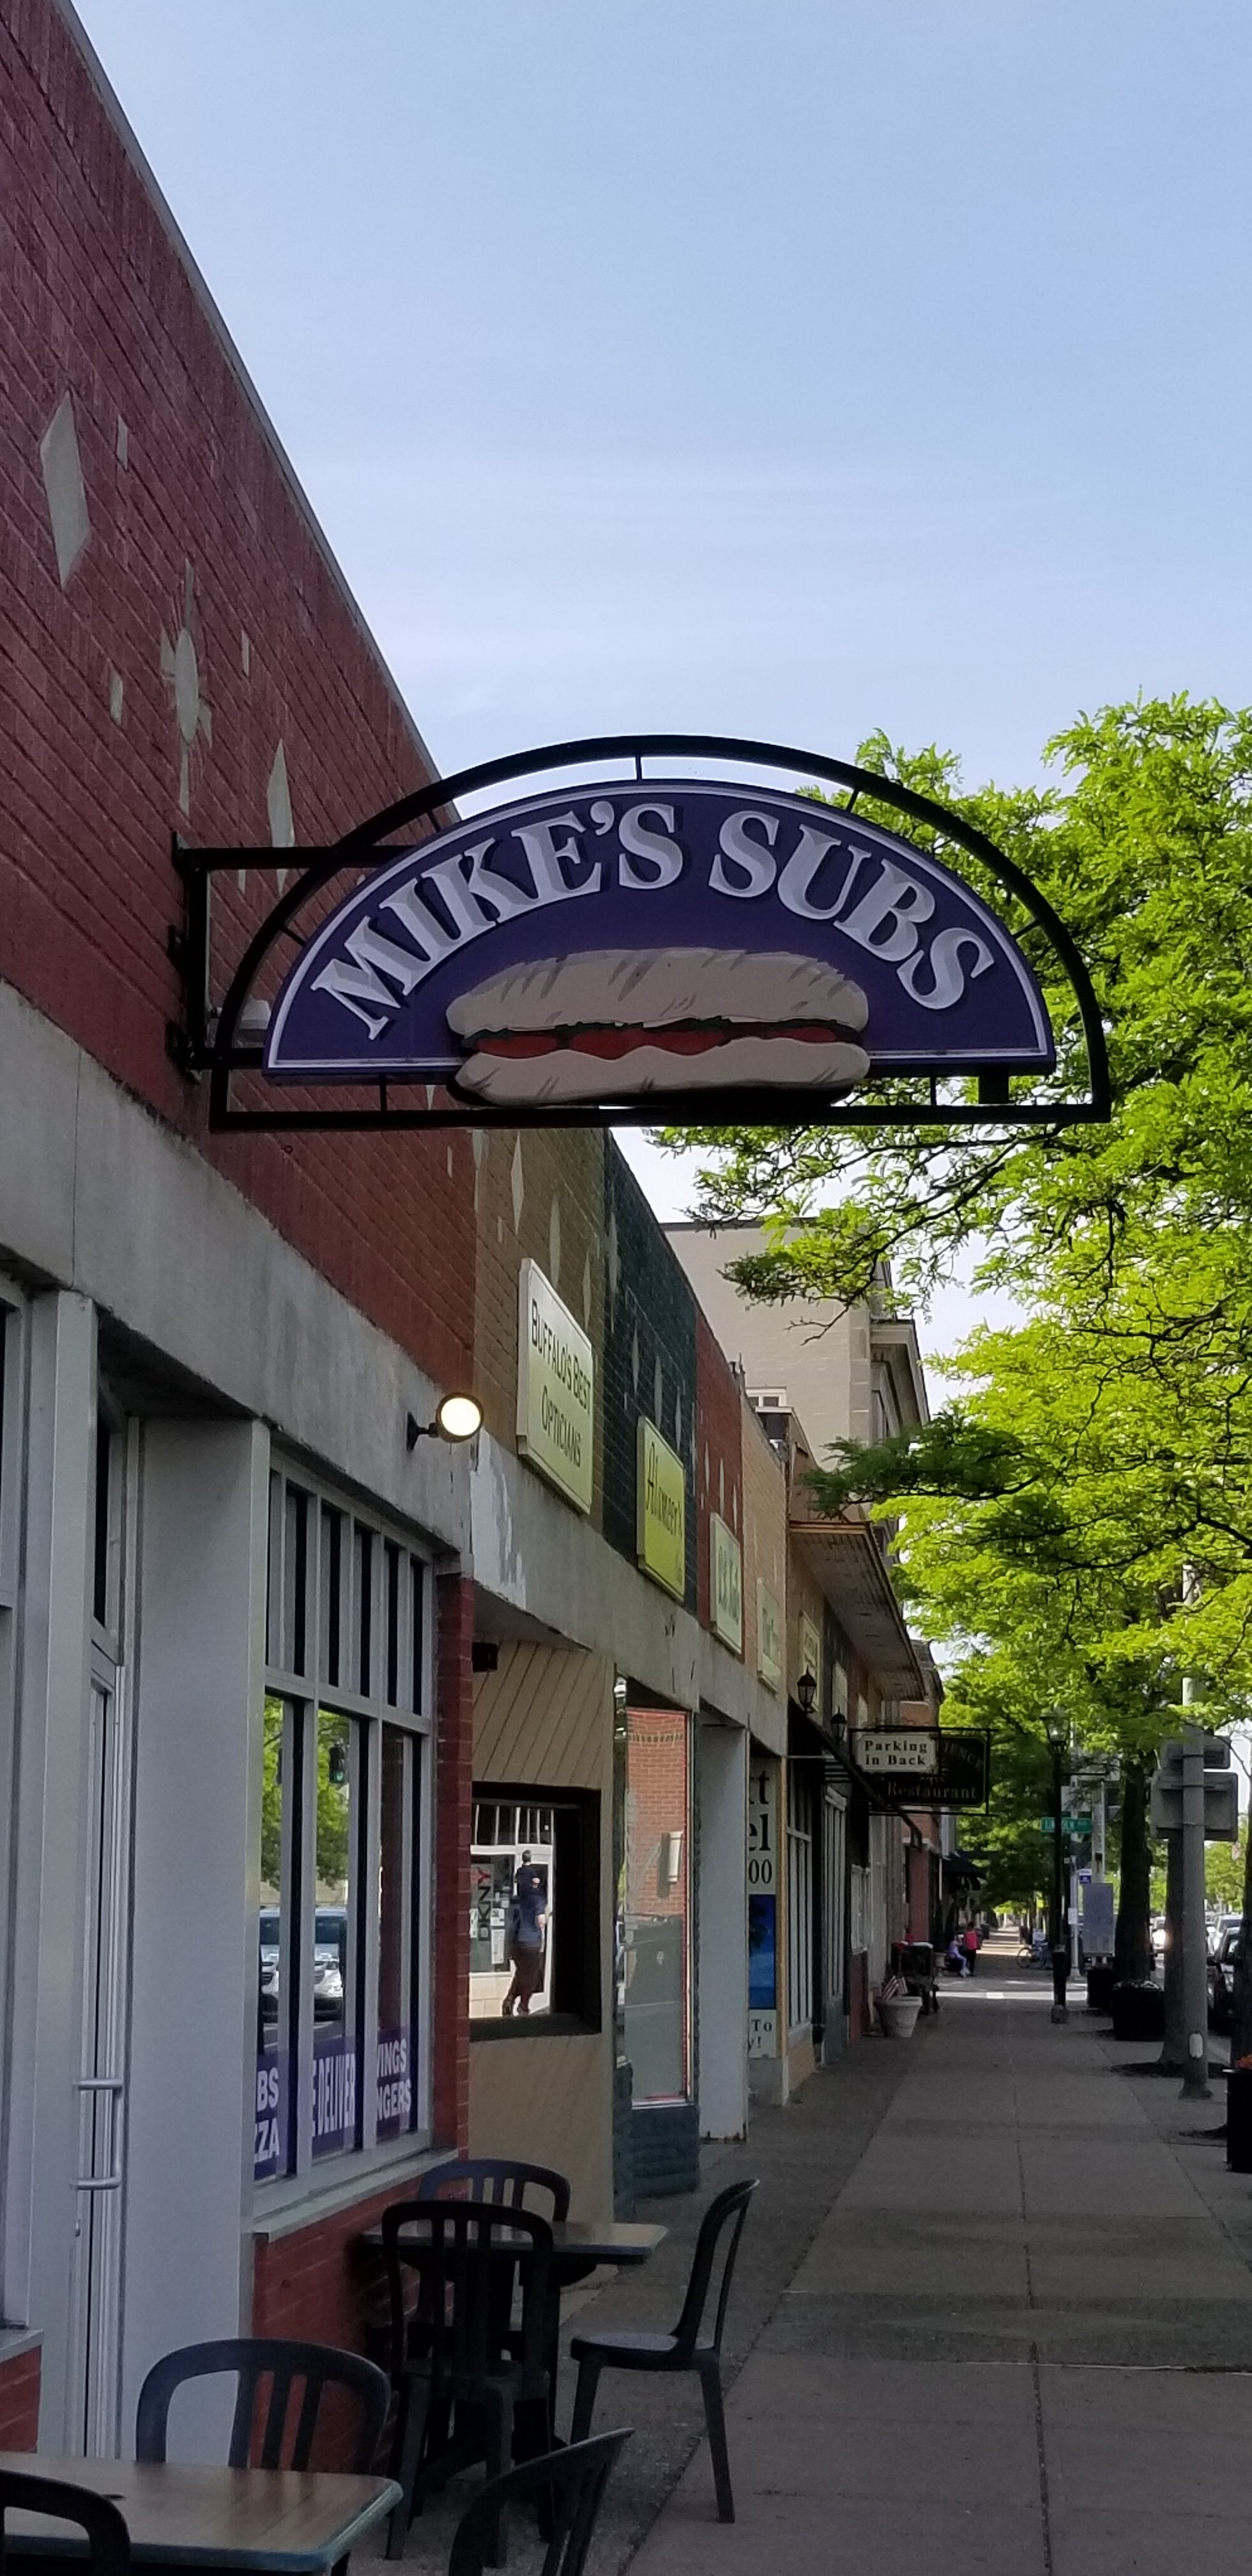 Mike's Subs Kenmore, NY in 2020 Broadway shows